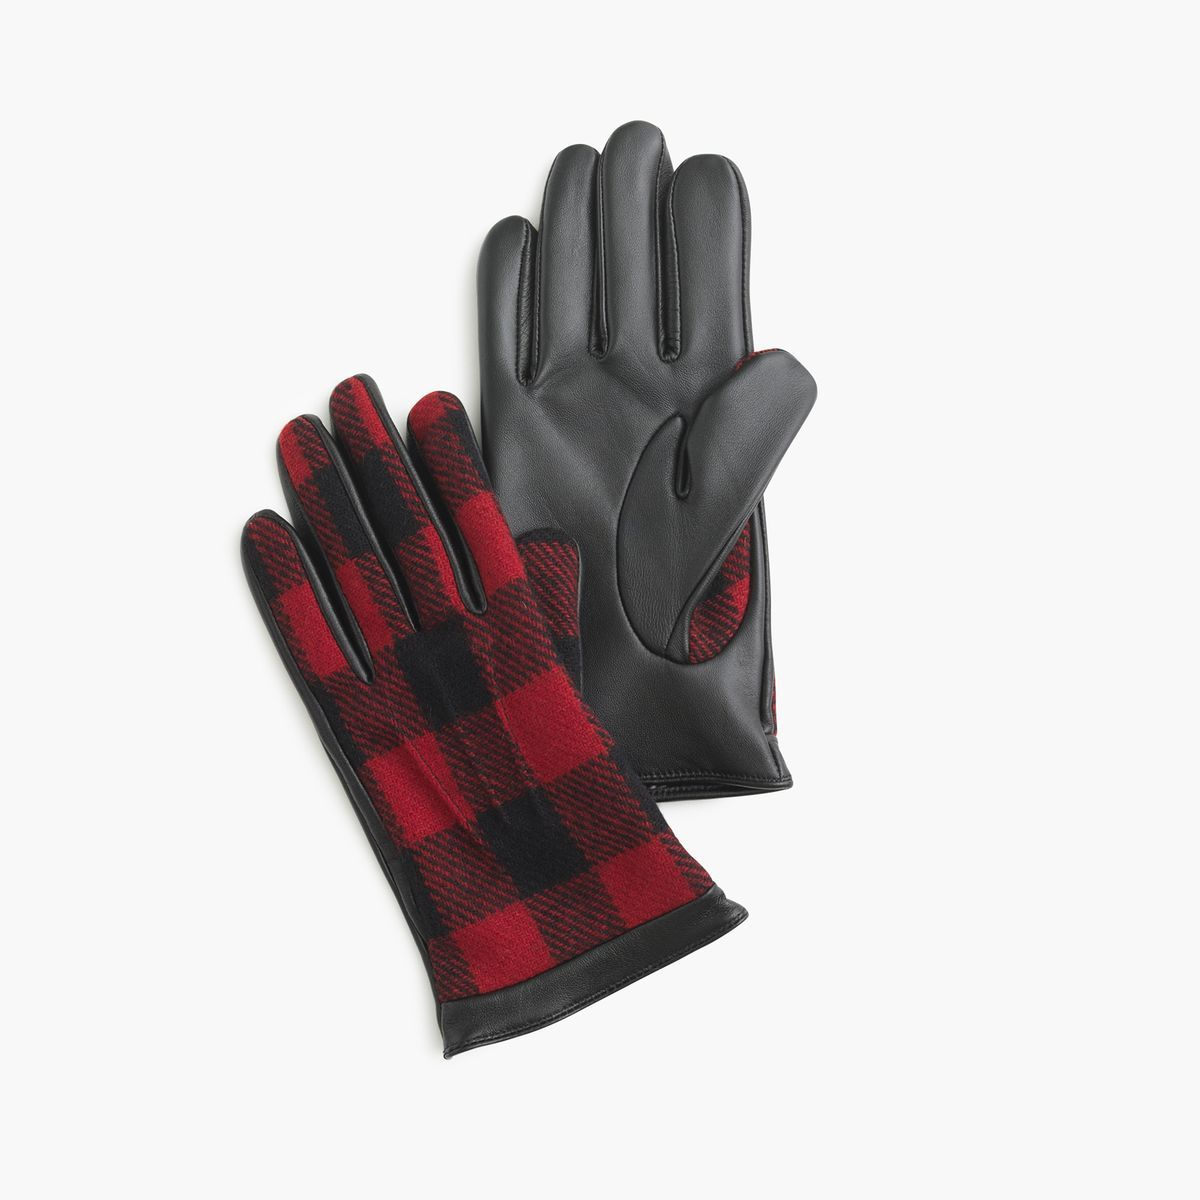 Mens gloves isotoner - Mens Plaid Gloves J Crew Gift Guide Men S Leather Gloves In Buffalo Plaid